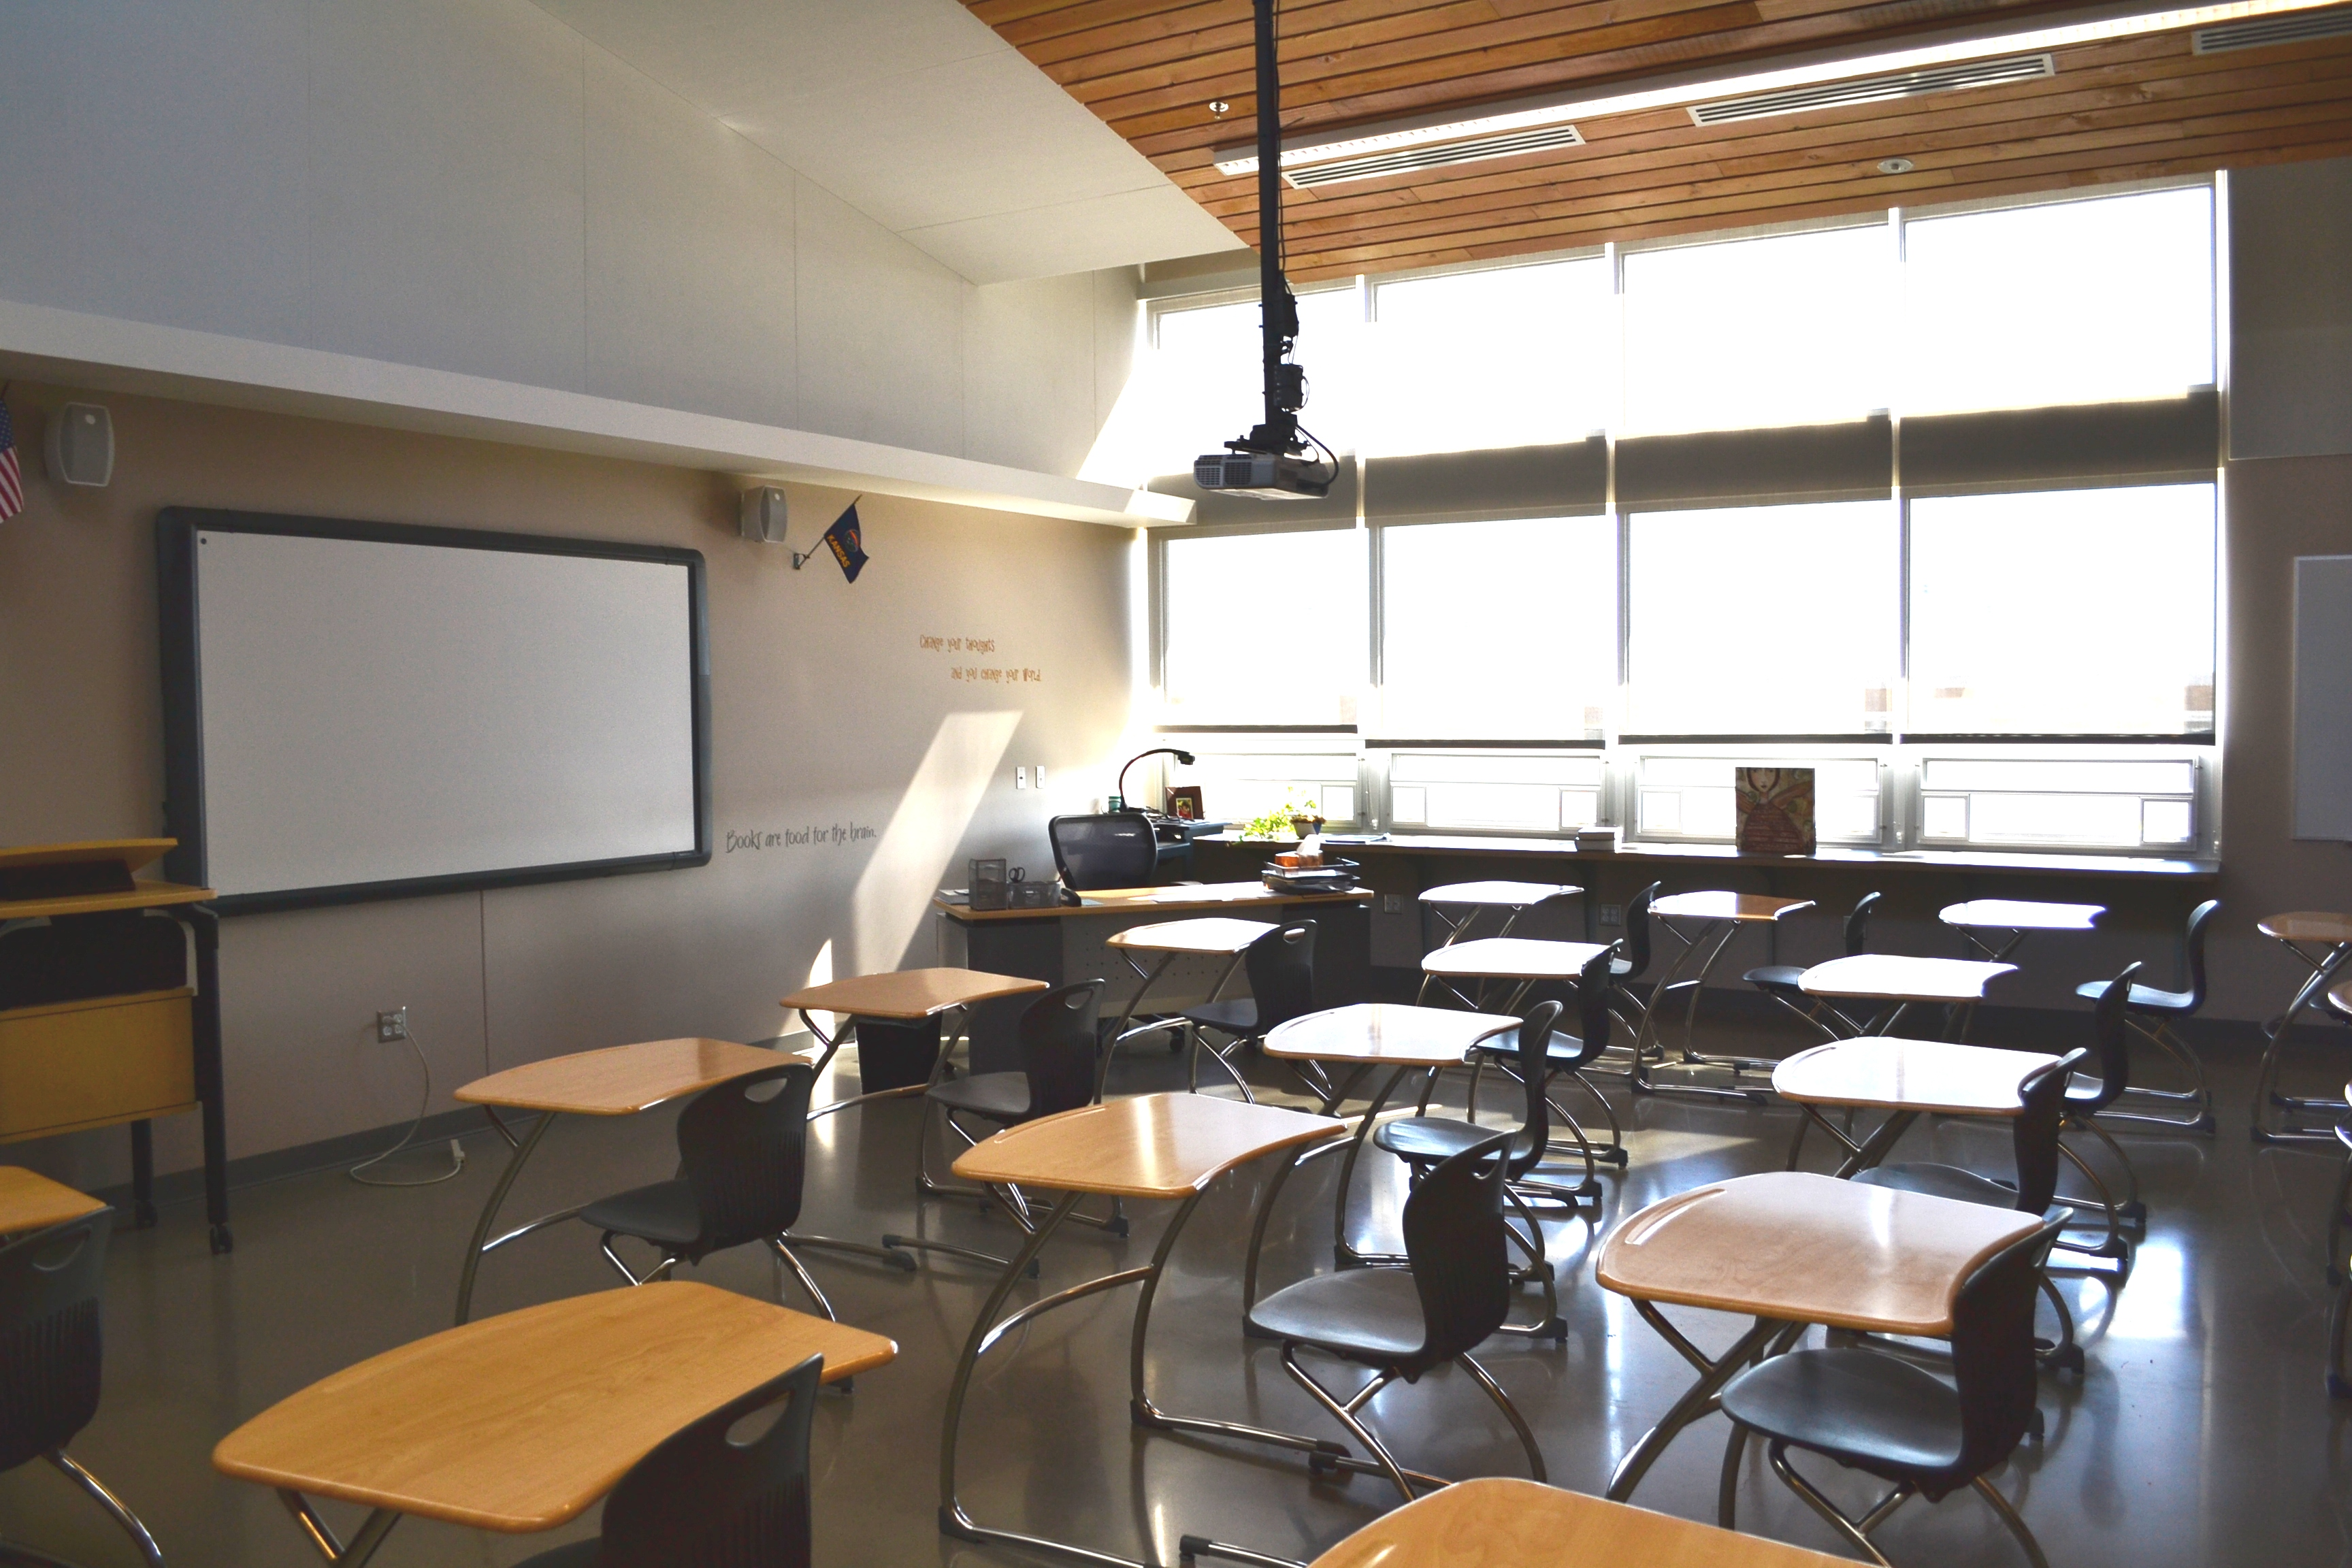 High School Classroom Interior Design ~ Designing green schools that advance public health